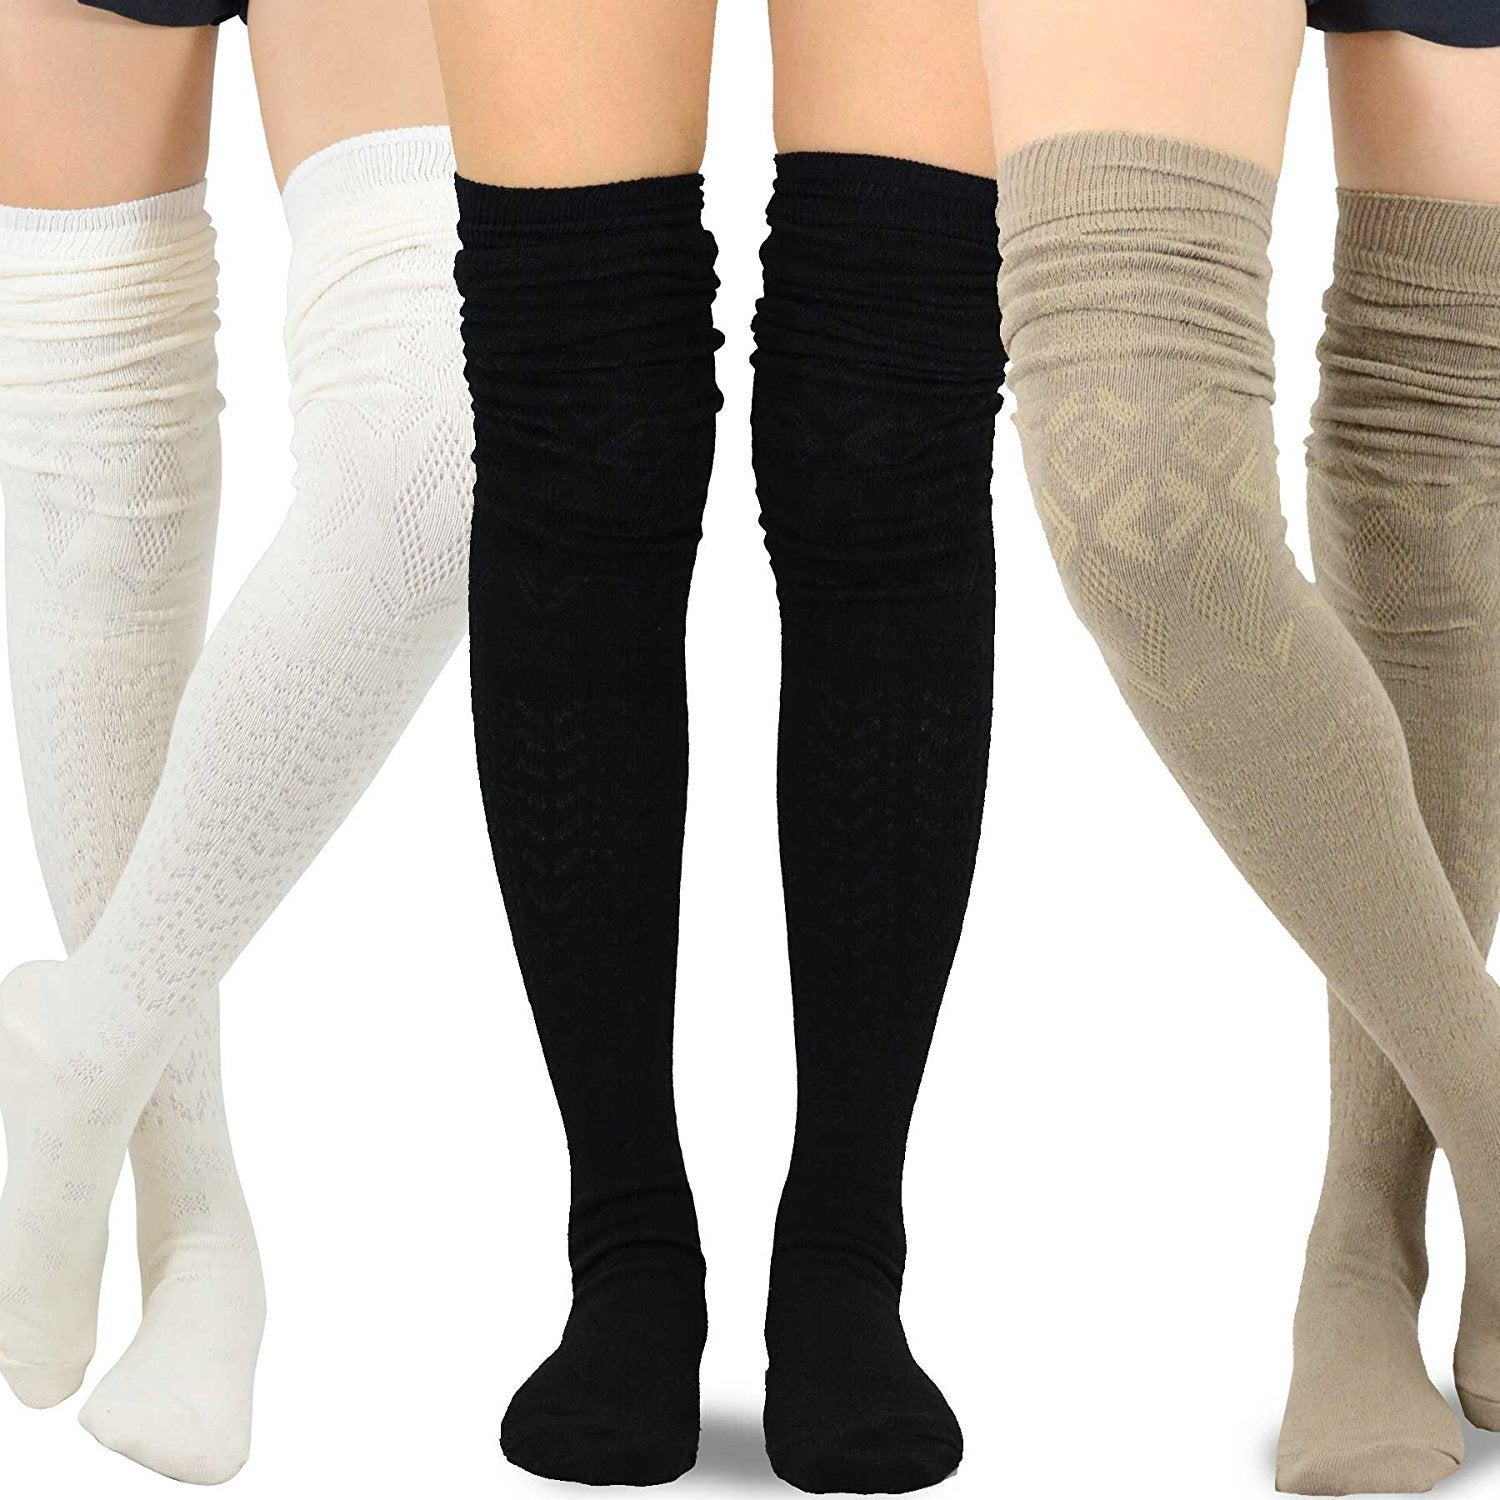 9ced4552c2b Shop Teehee Women s Fashion Extra Long Cotton Thigh High Socks 3 pack - Free  Shipping On Orders Over  45 - Overstock - 16105648